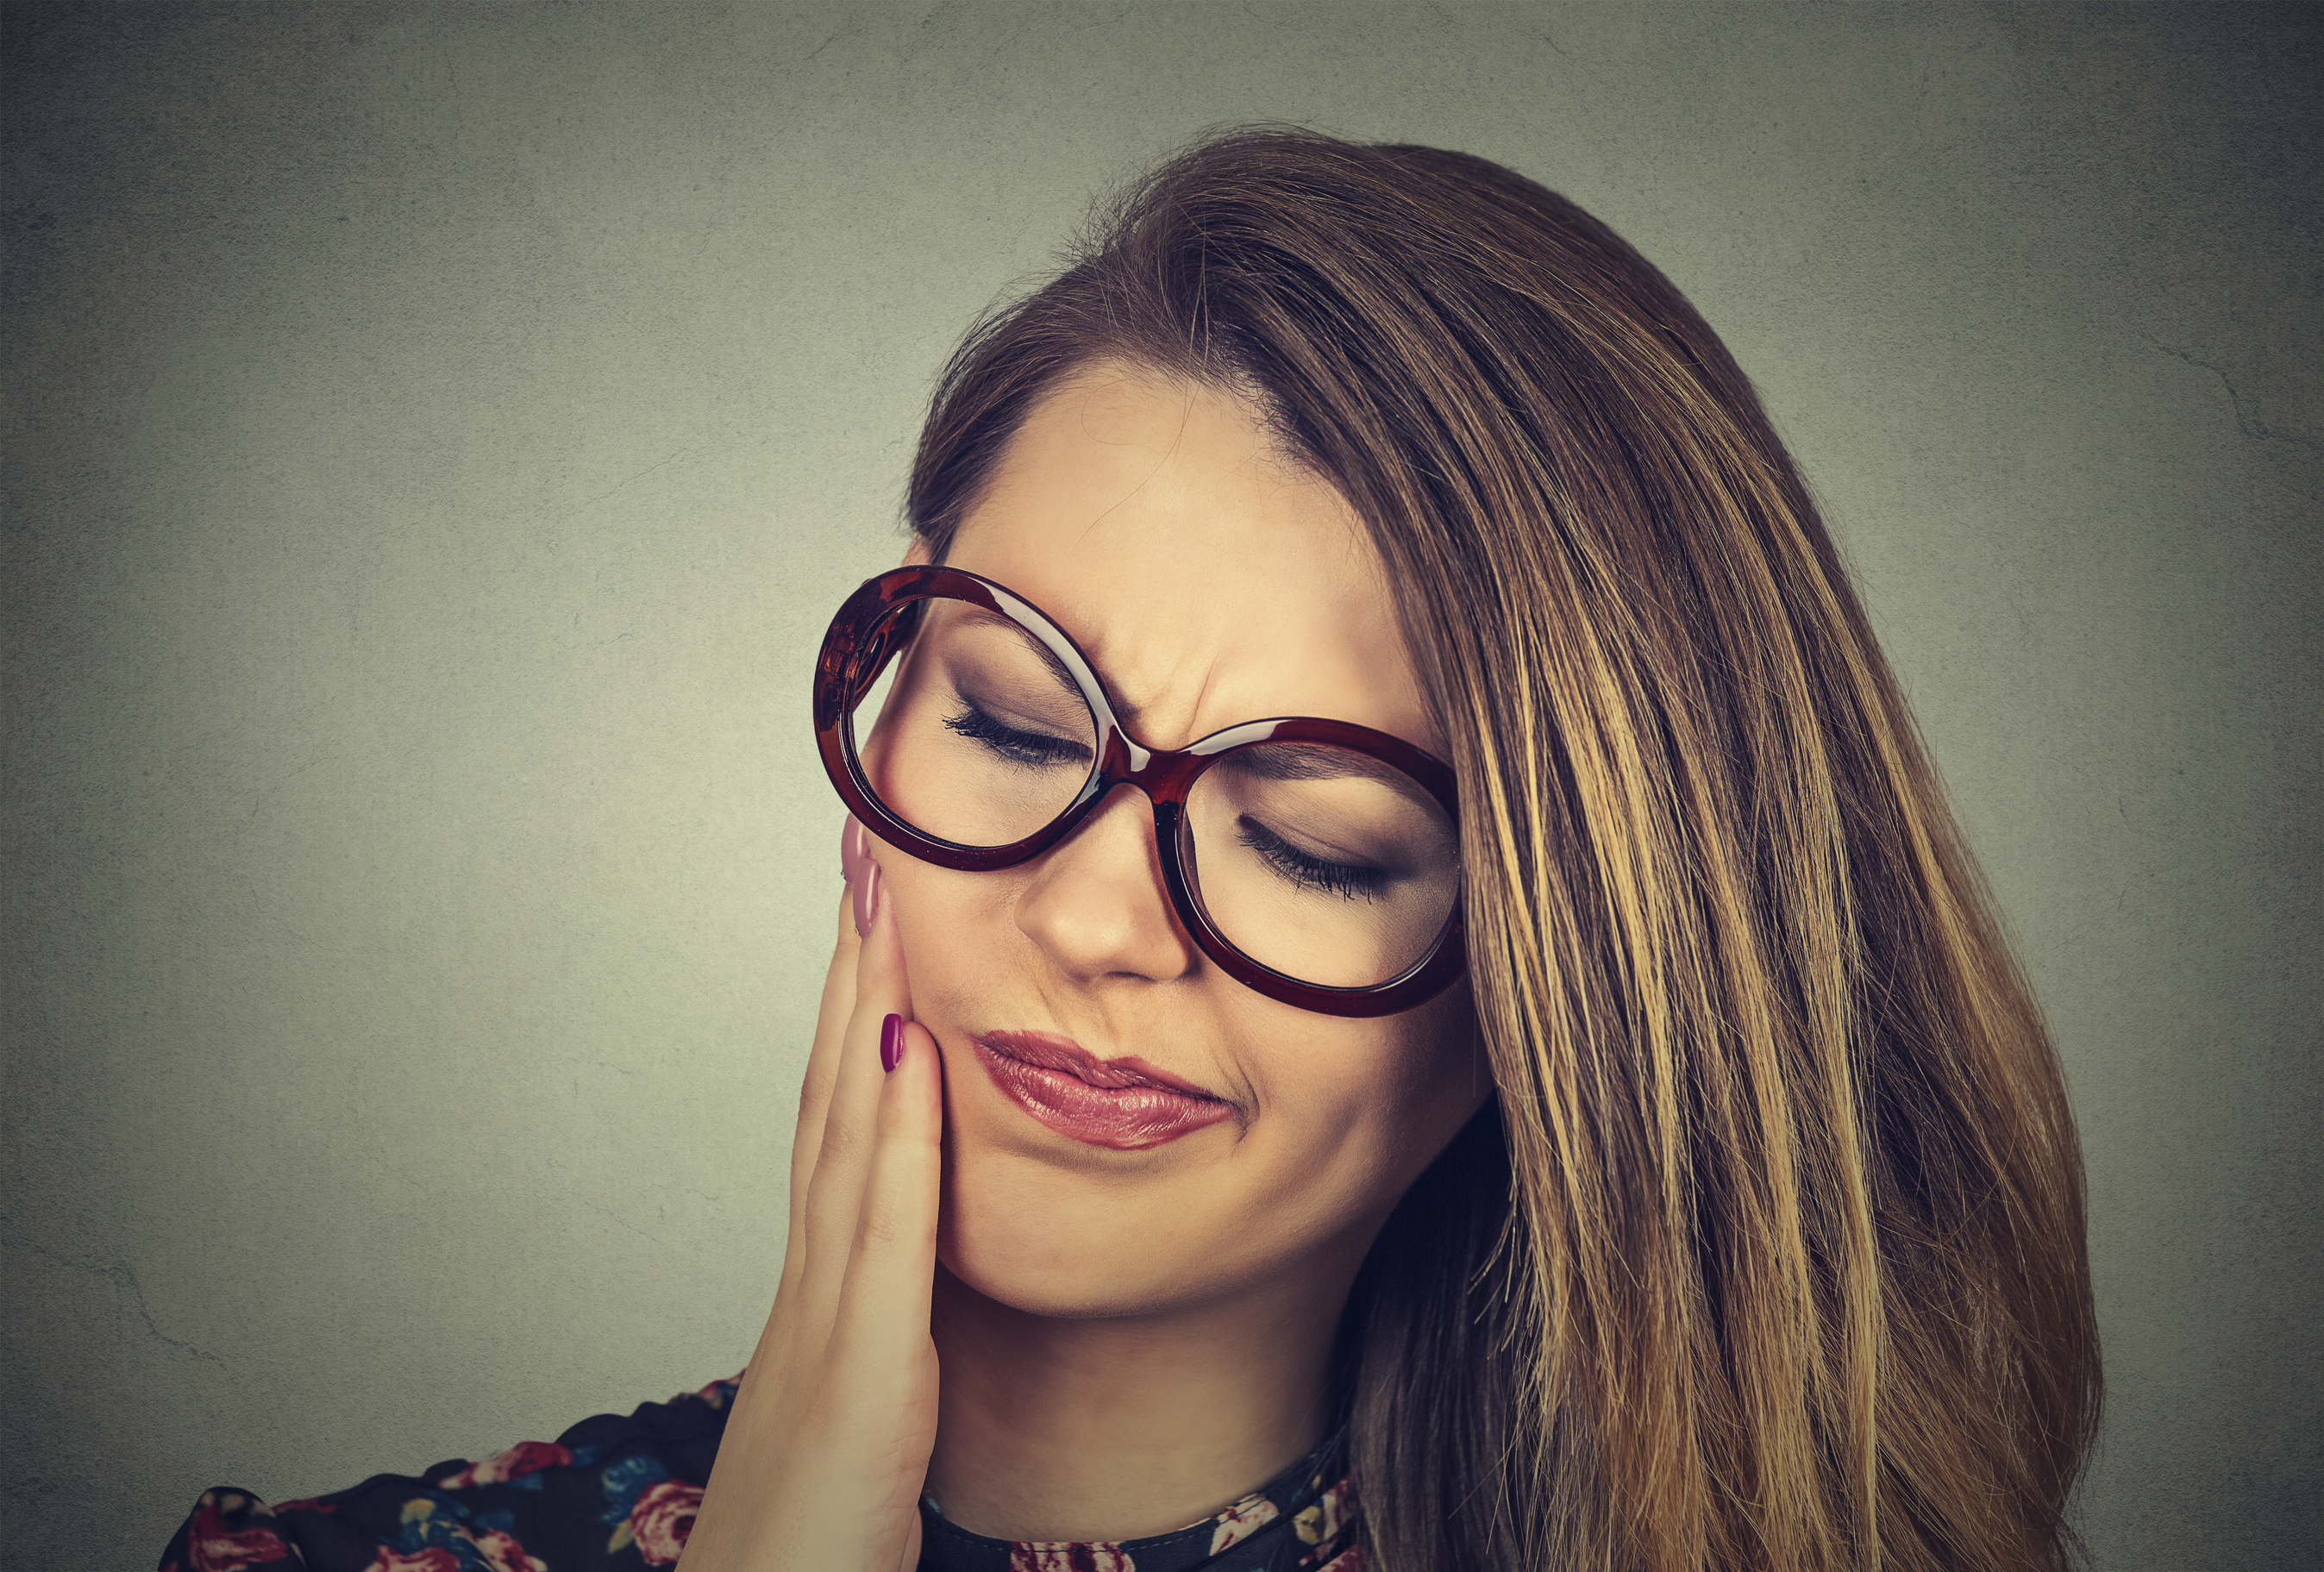 WISDOM TEETH AND GENERAL EXTRACTIONS